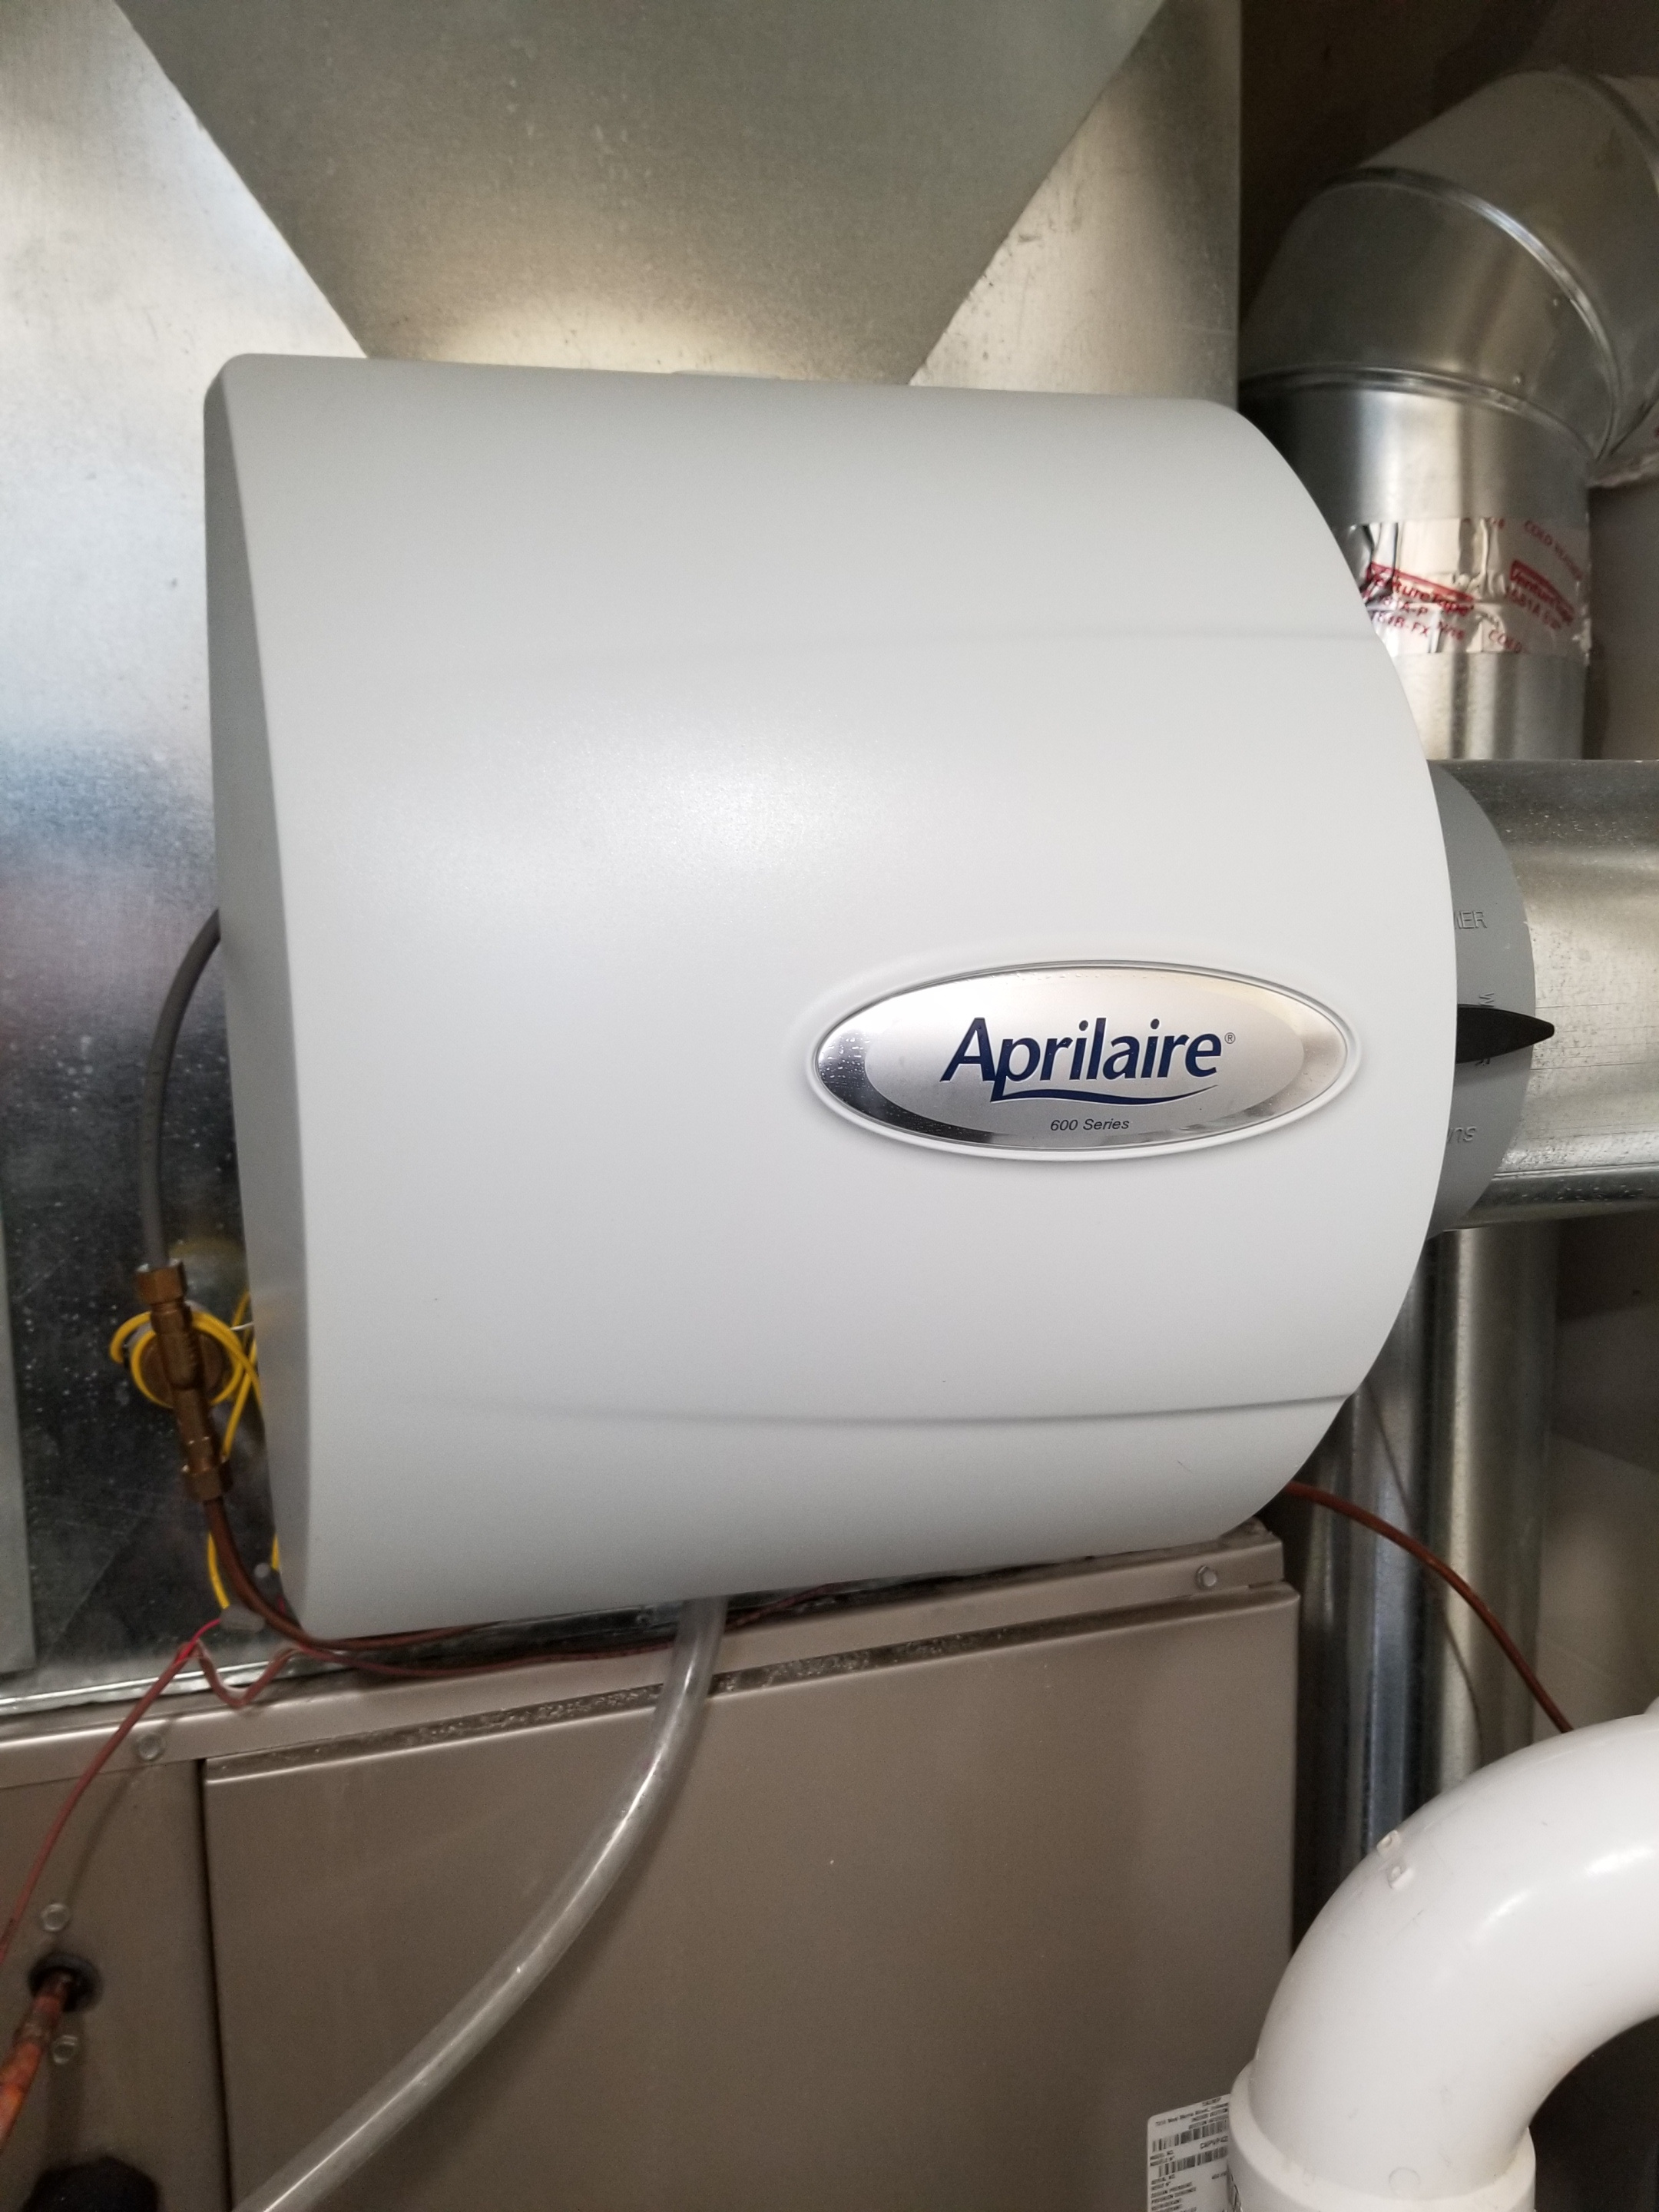 Repaired the Aprilaire humidifier and Carrier furnace and made adjustments to improve the overall efficiency and life expectancy of the equipment